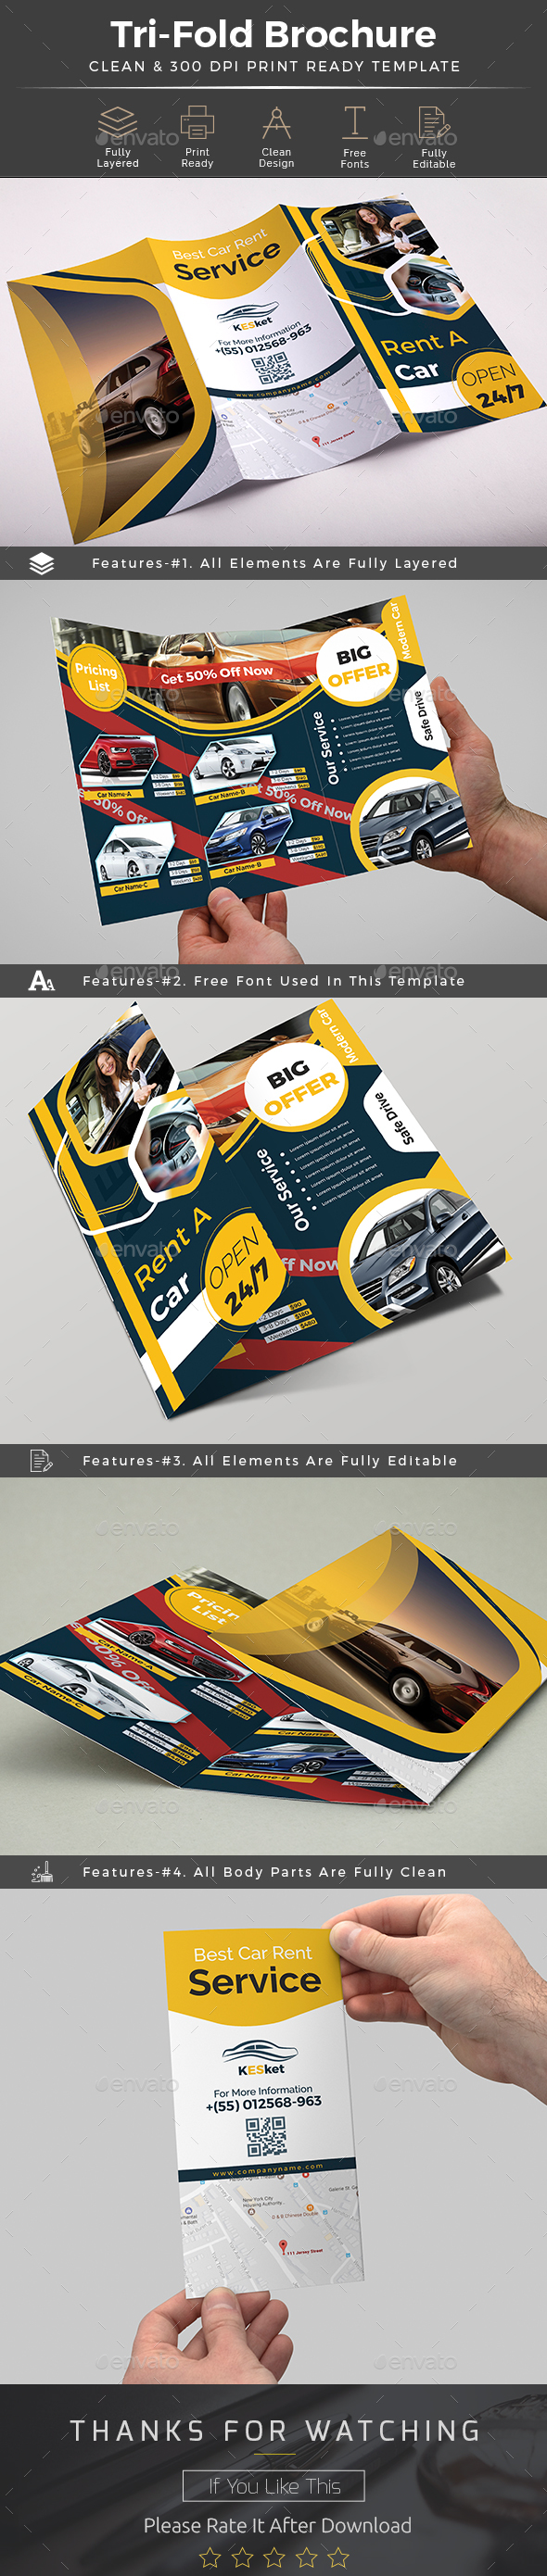 Rent a Car Trifold Brochure Template - Brochures Print Templates